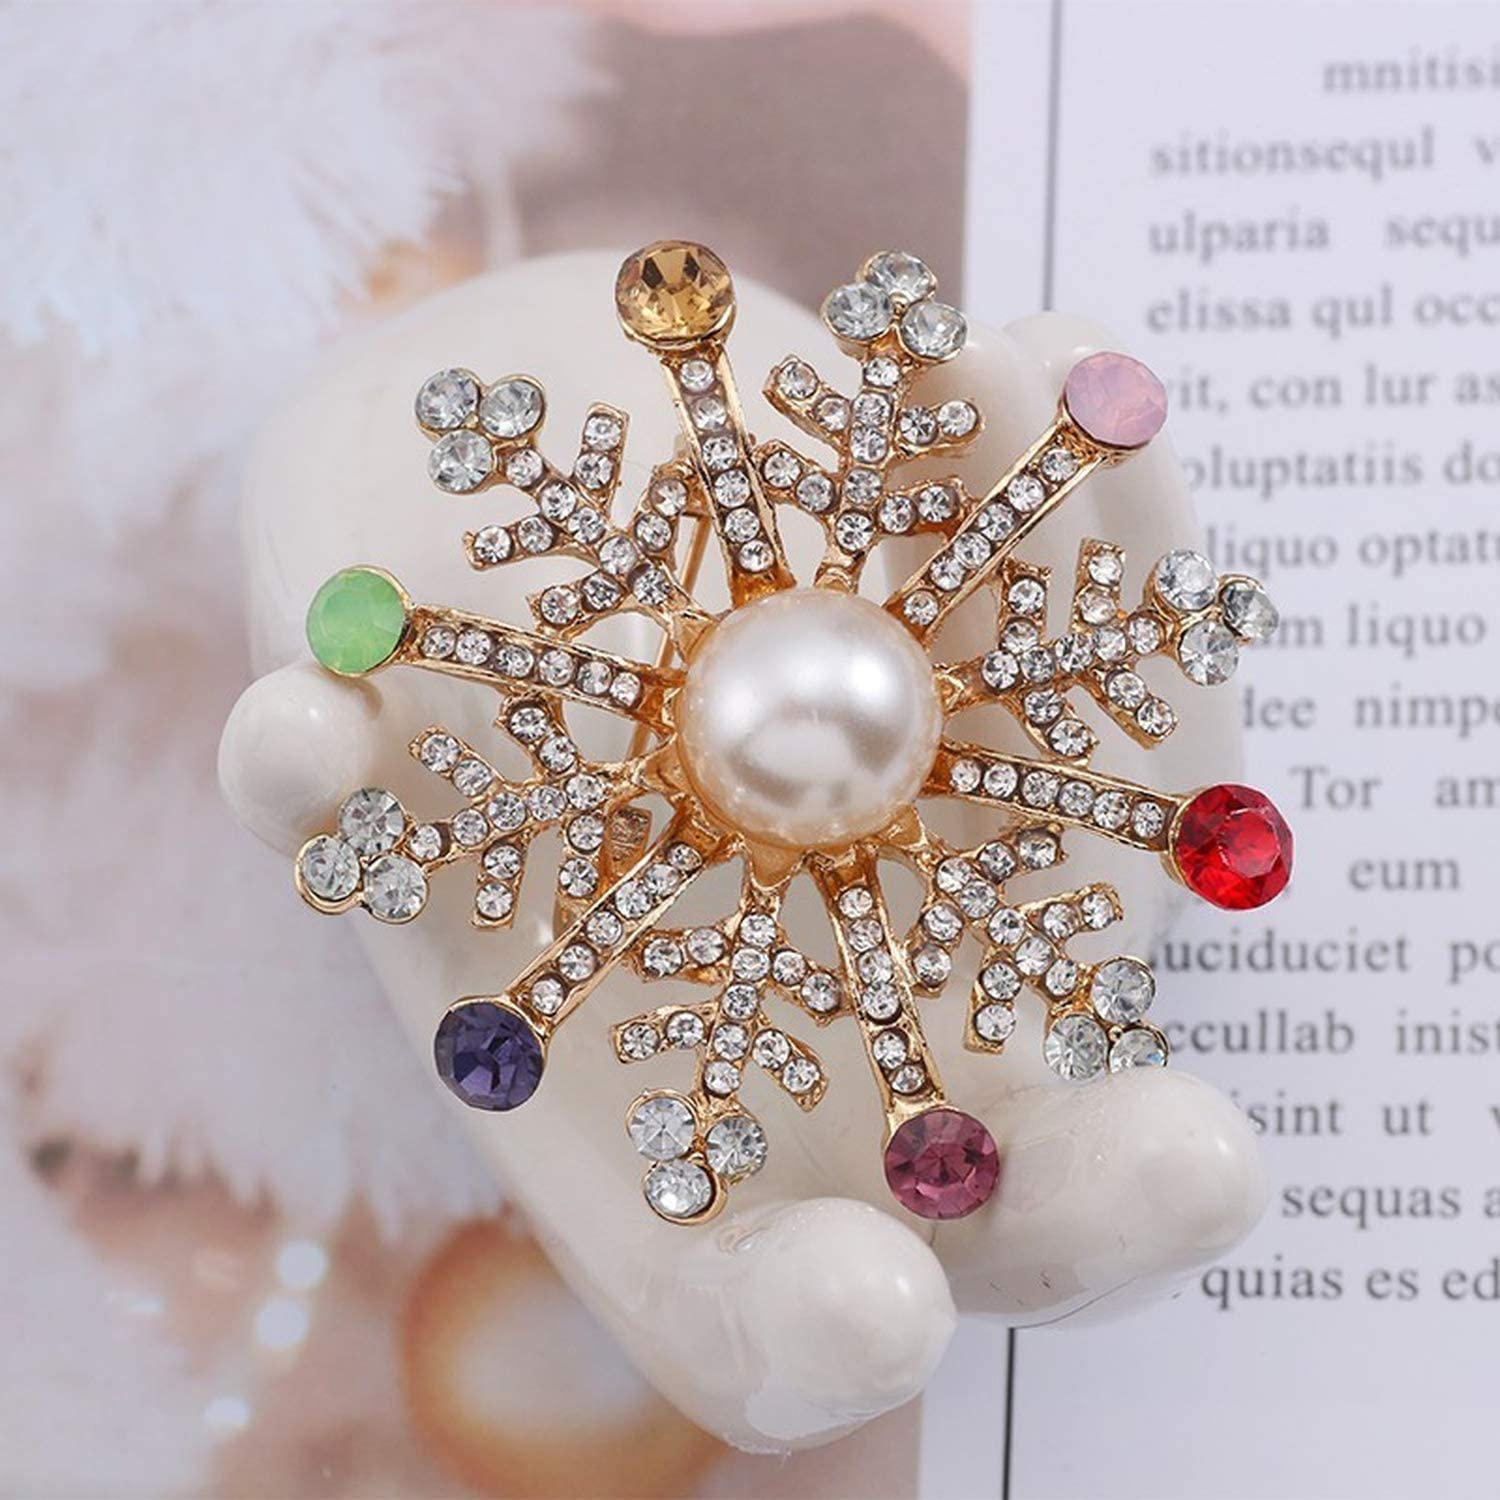 Encounter/_meet pins Christmas Brooch Pins Bell Snowflake Brooches for Women Pins and Brooches Jewelry Xmas Gift,055-Silver